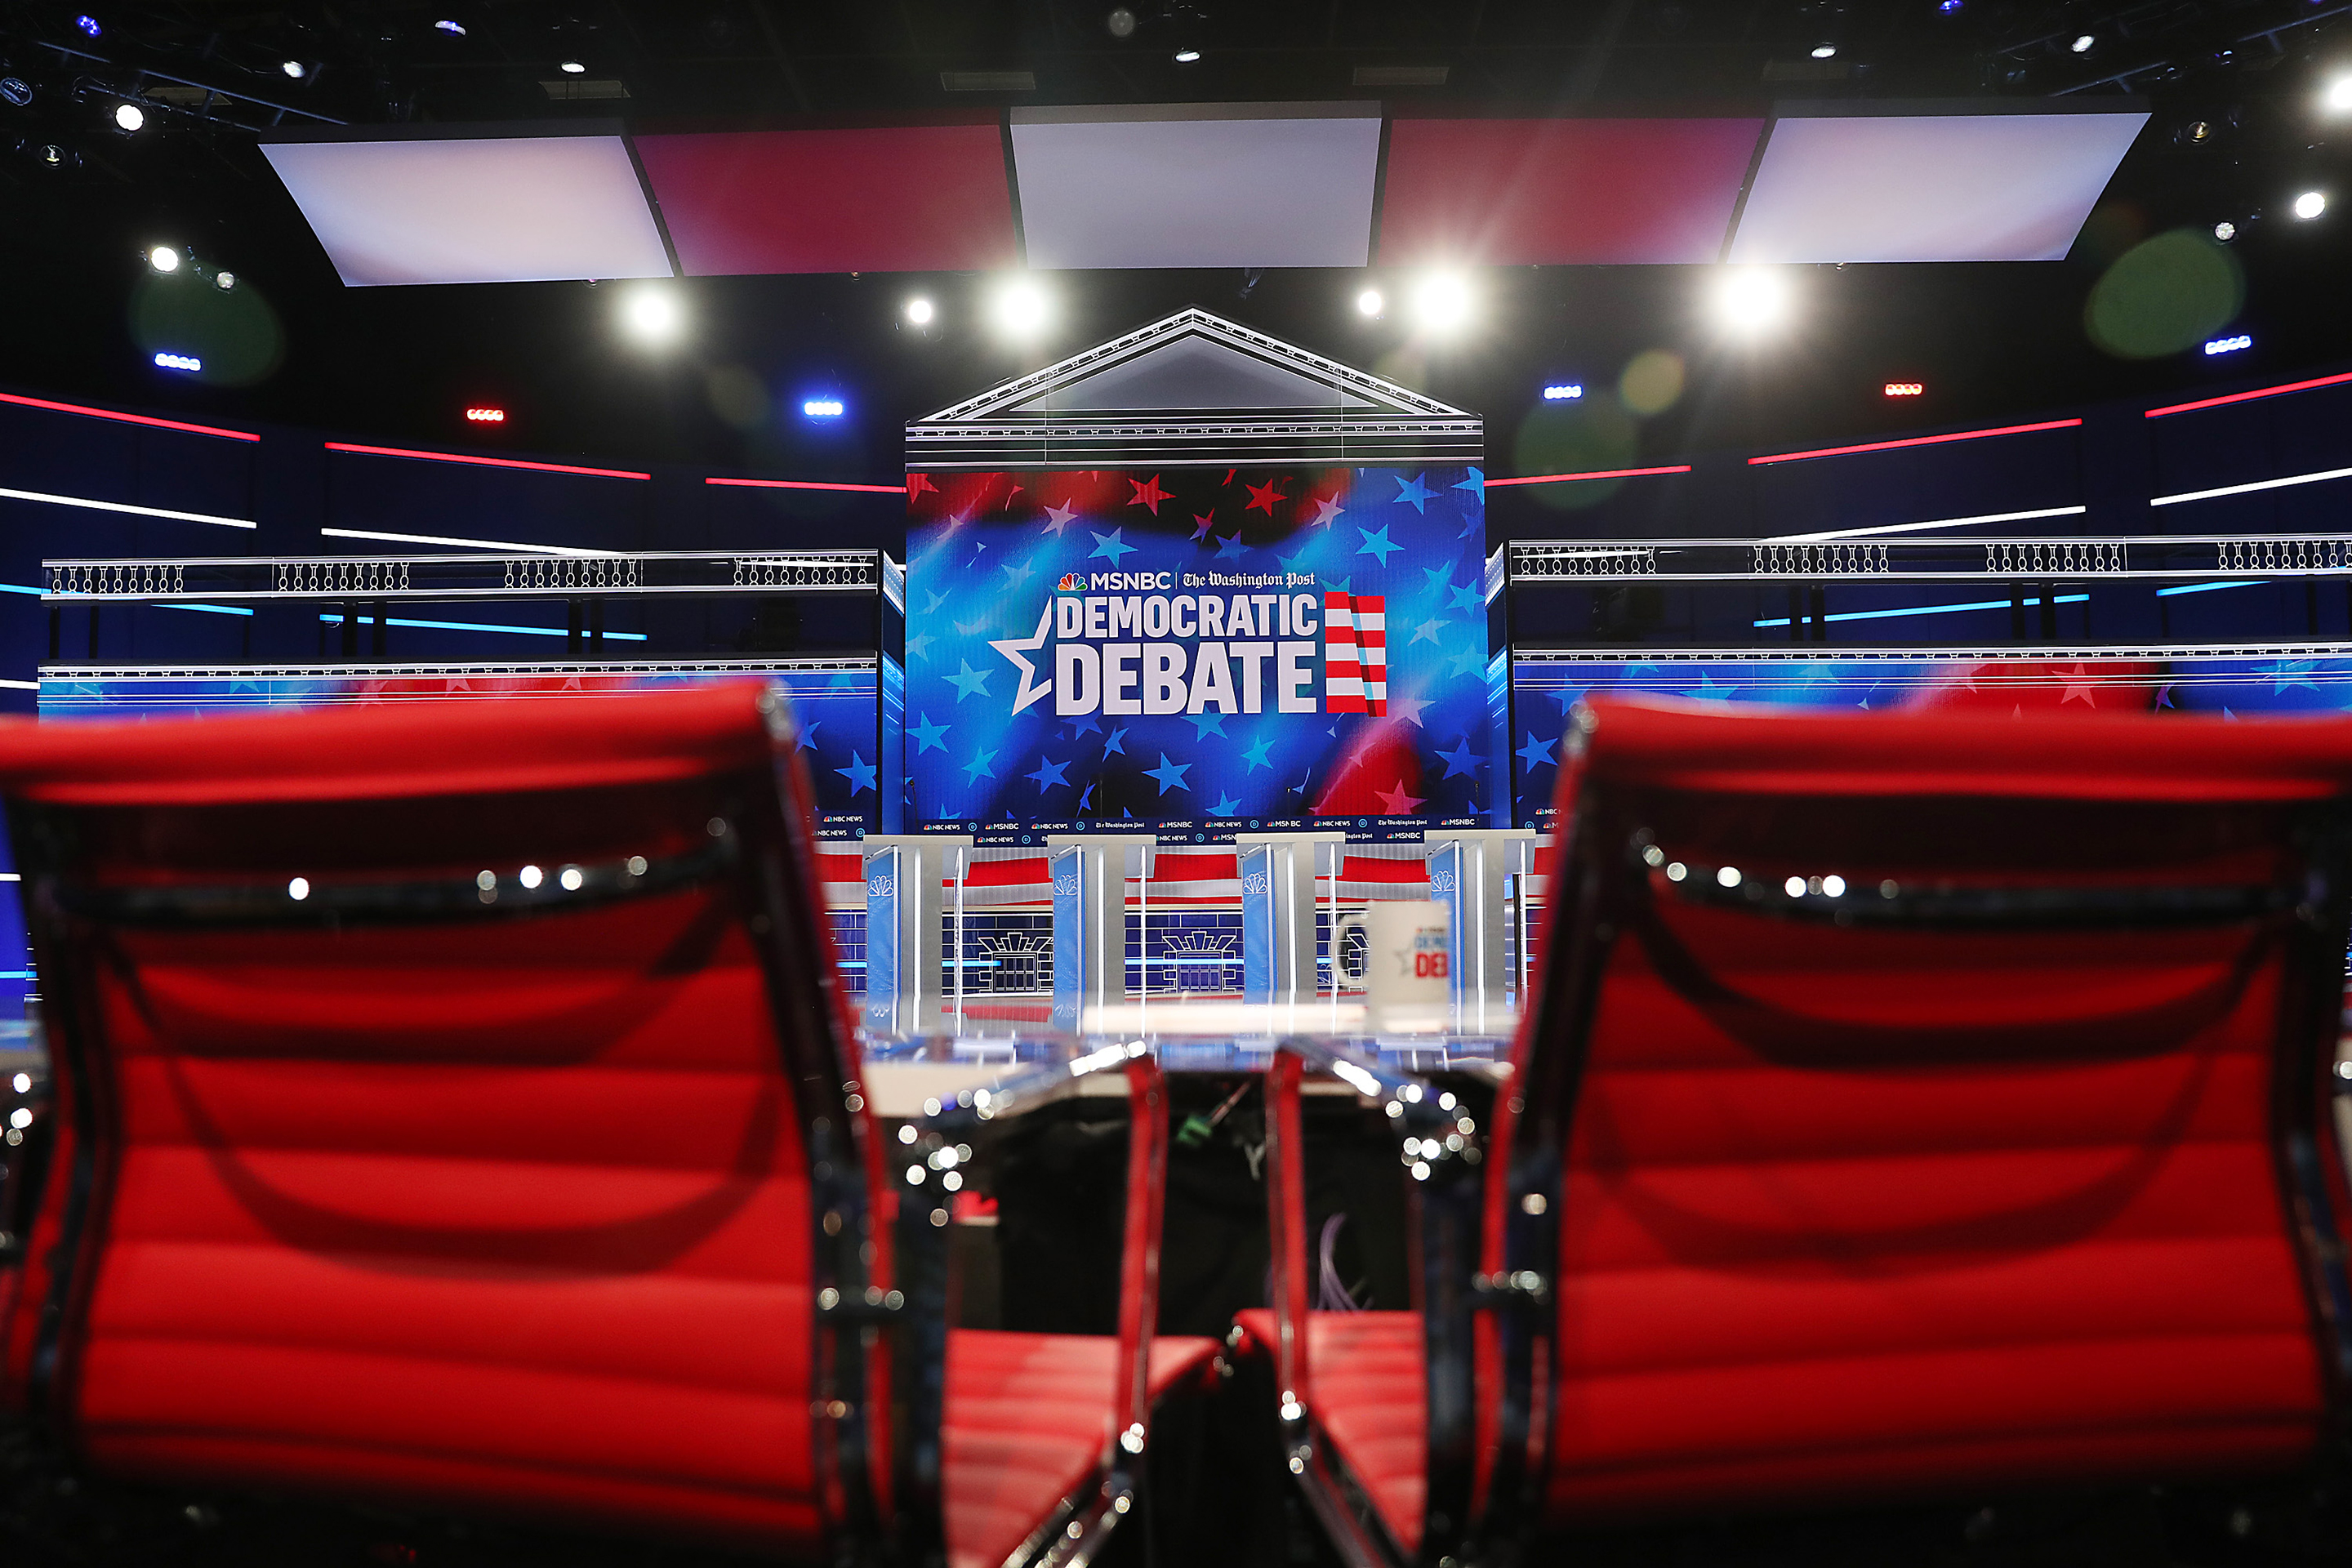 How to Watch, Stream Democratic Debate Online Without Cable